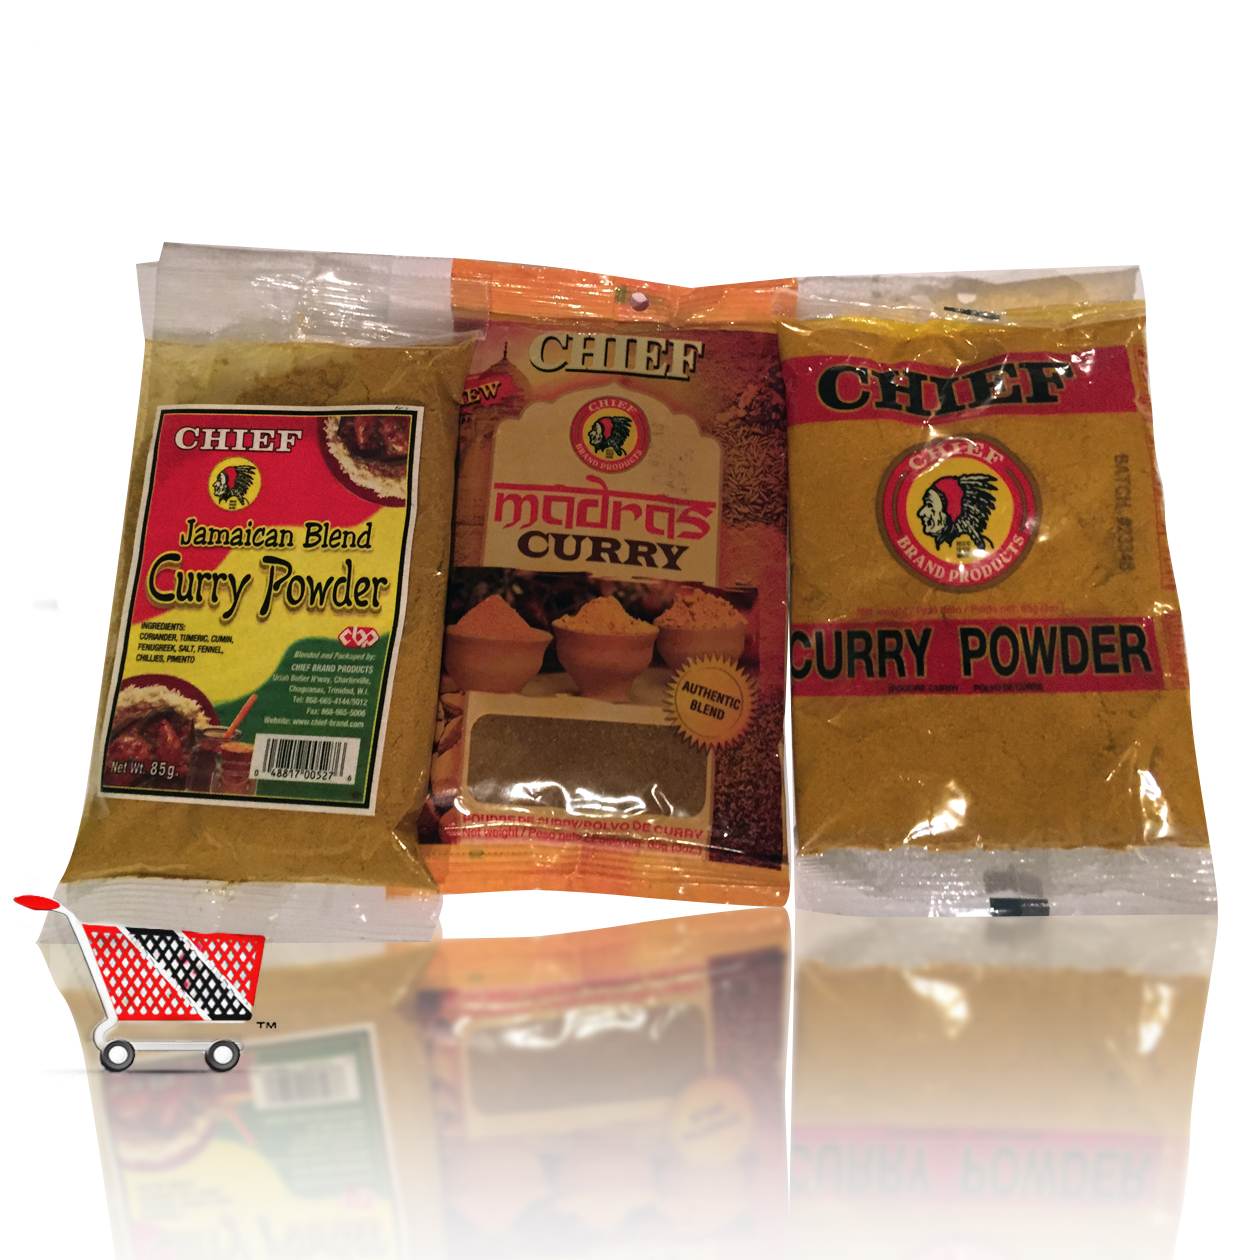 mytrinigrocery-product-reflection-currypowder.jpg